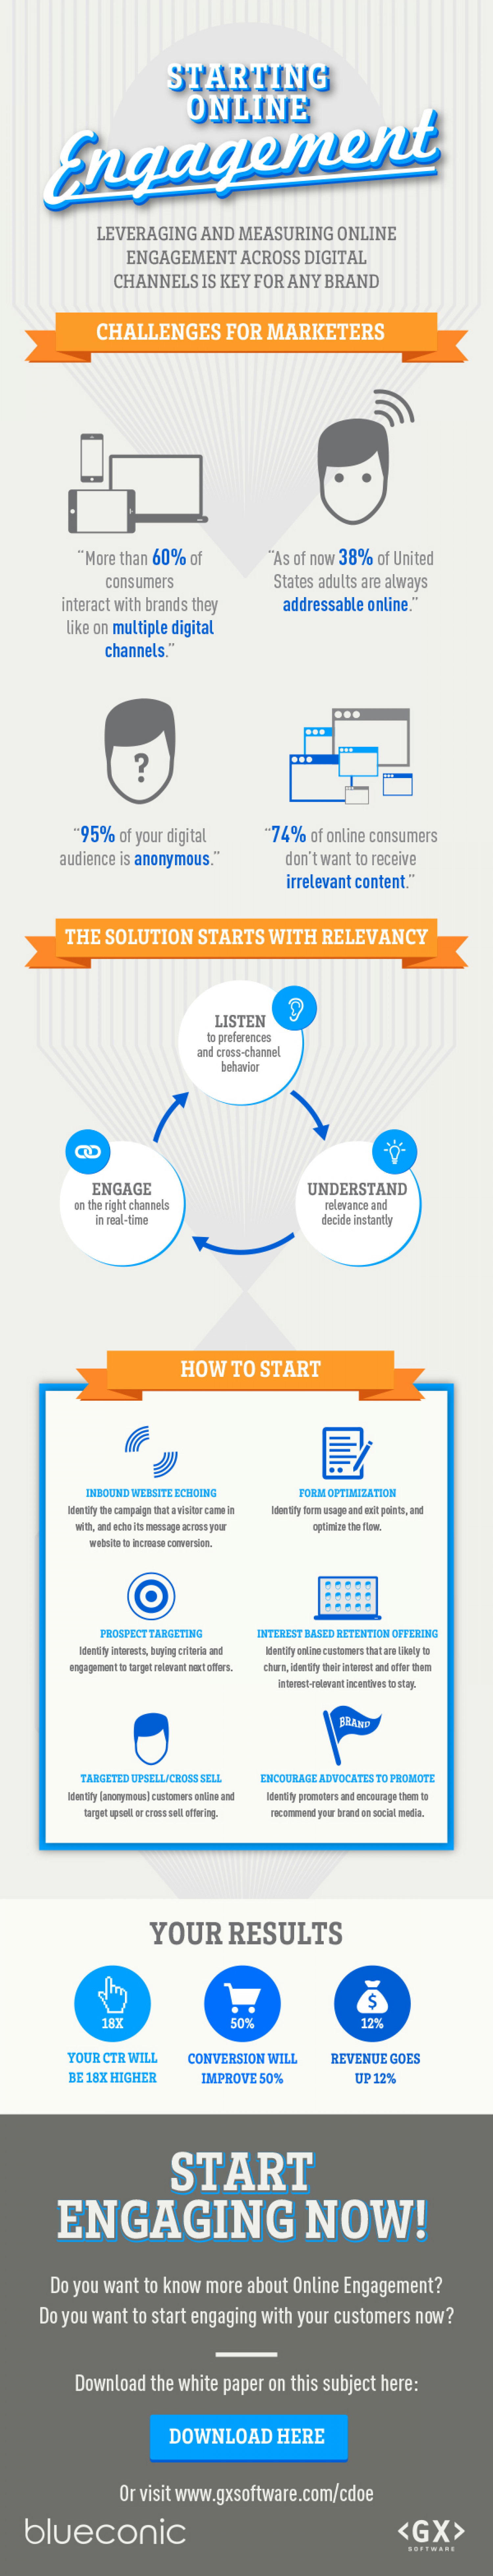 Starting Online Engagement Infographic